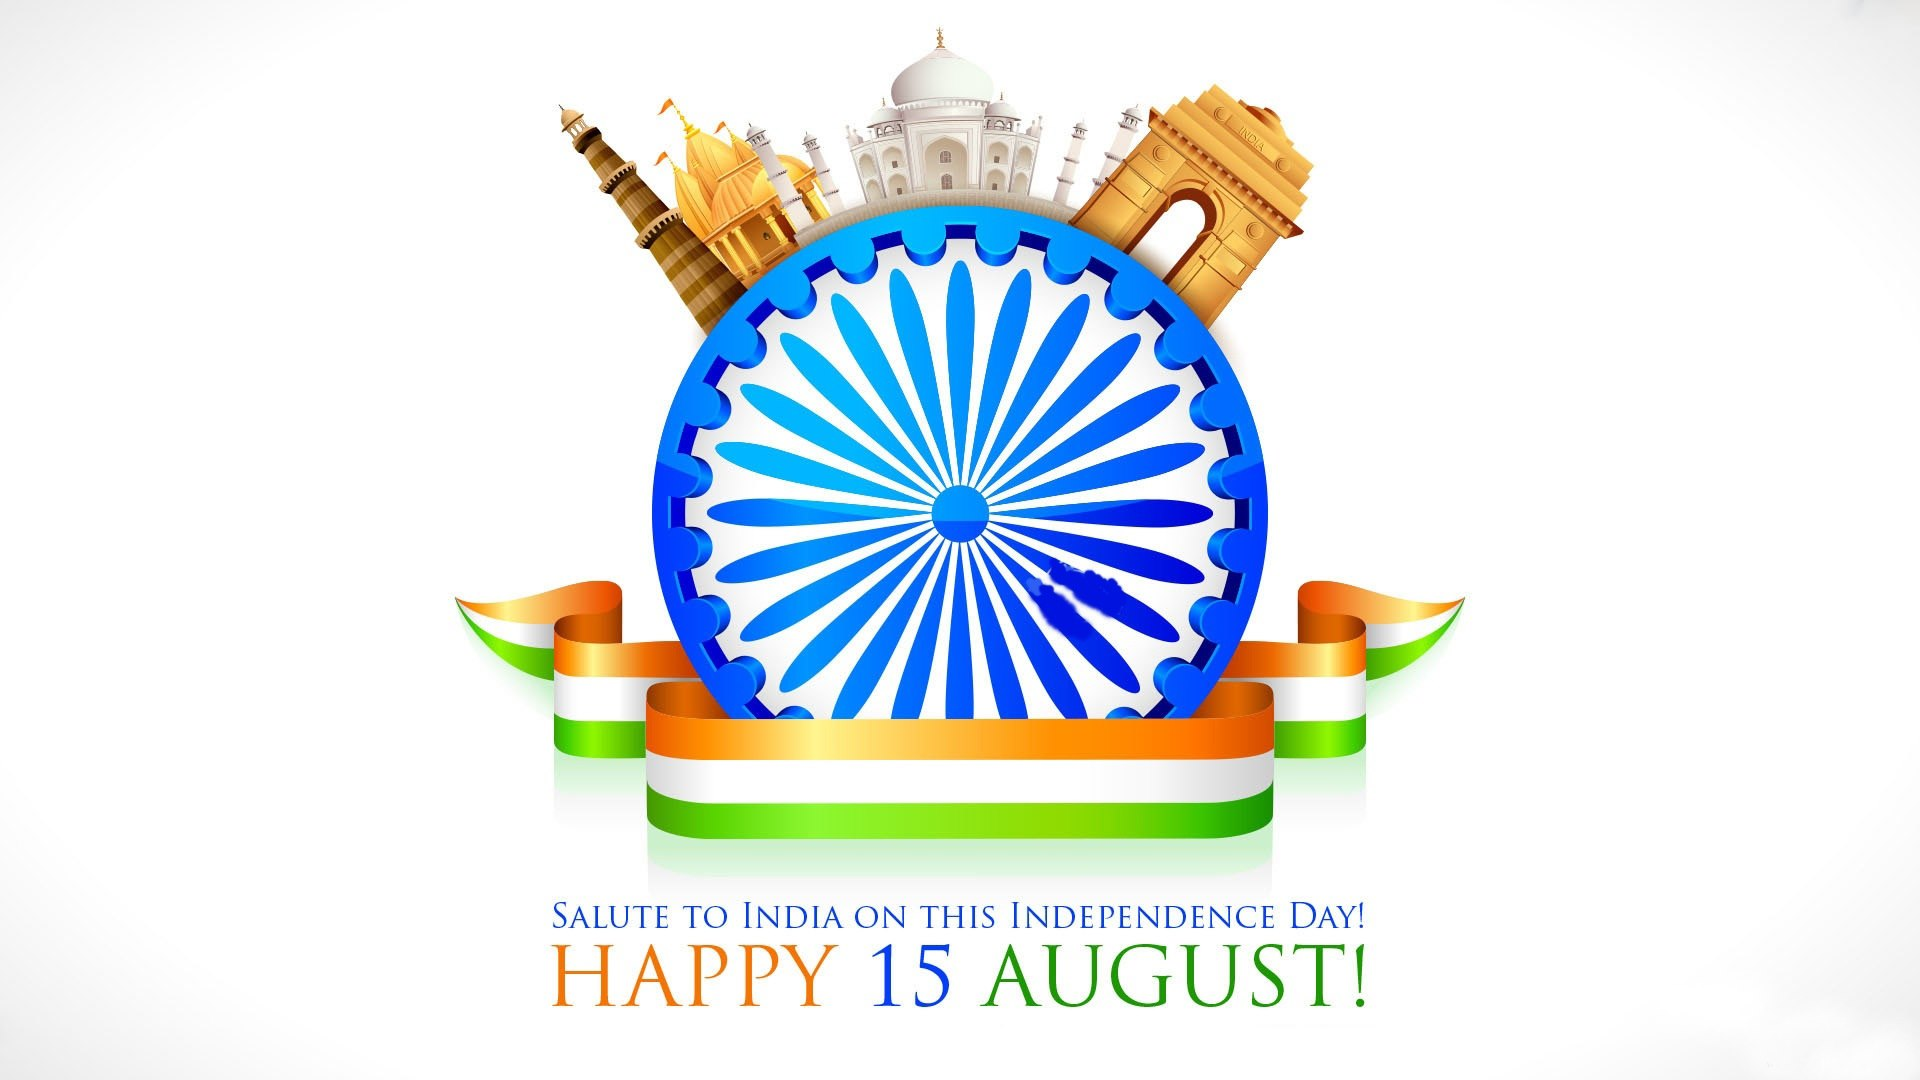 Happy 15 August Indian Independence Day Quotes Wallpapers HAPPY 1920x1080